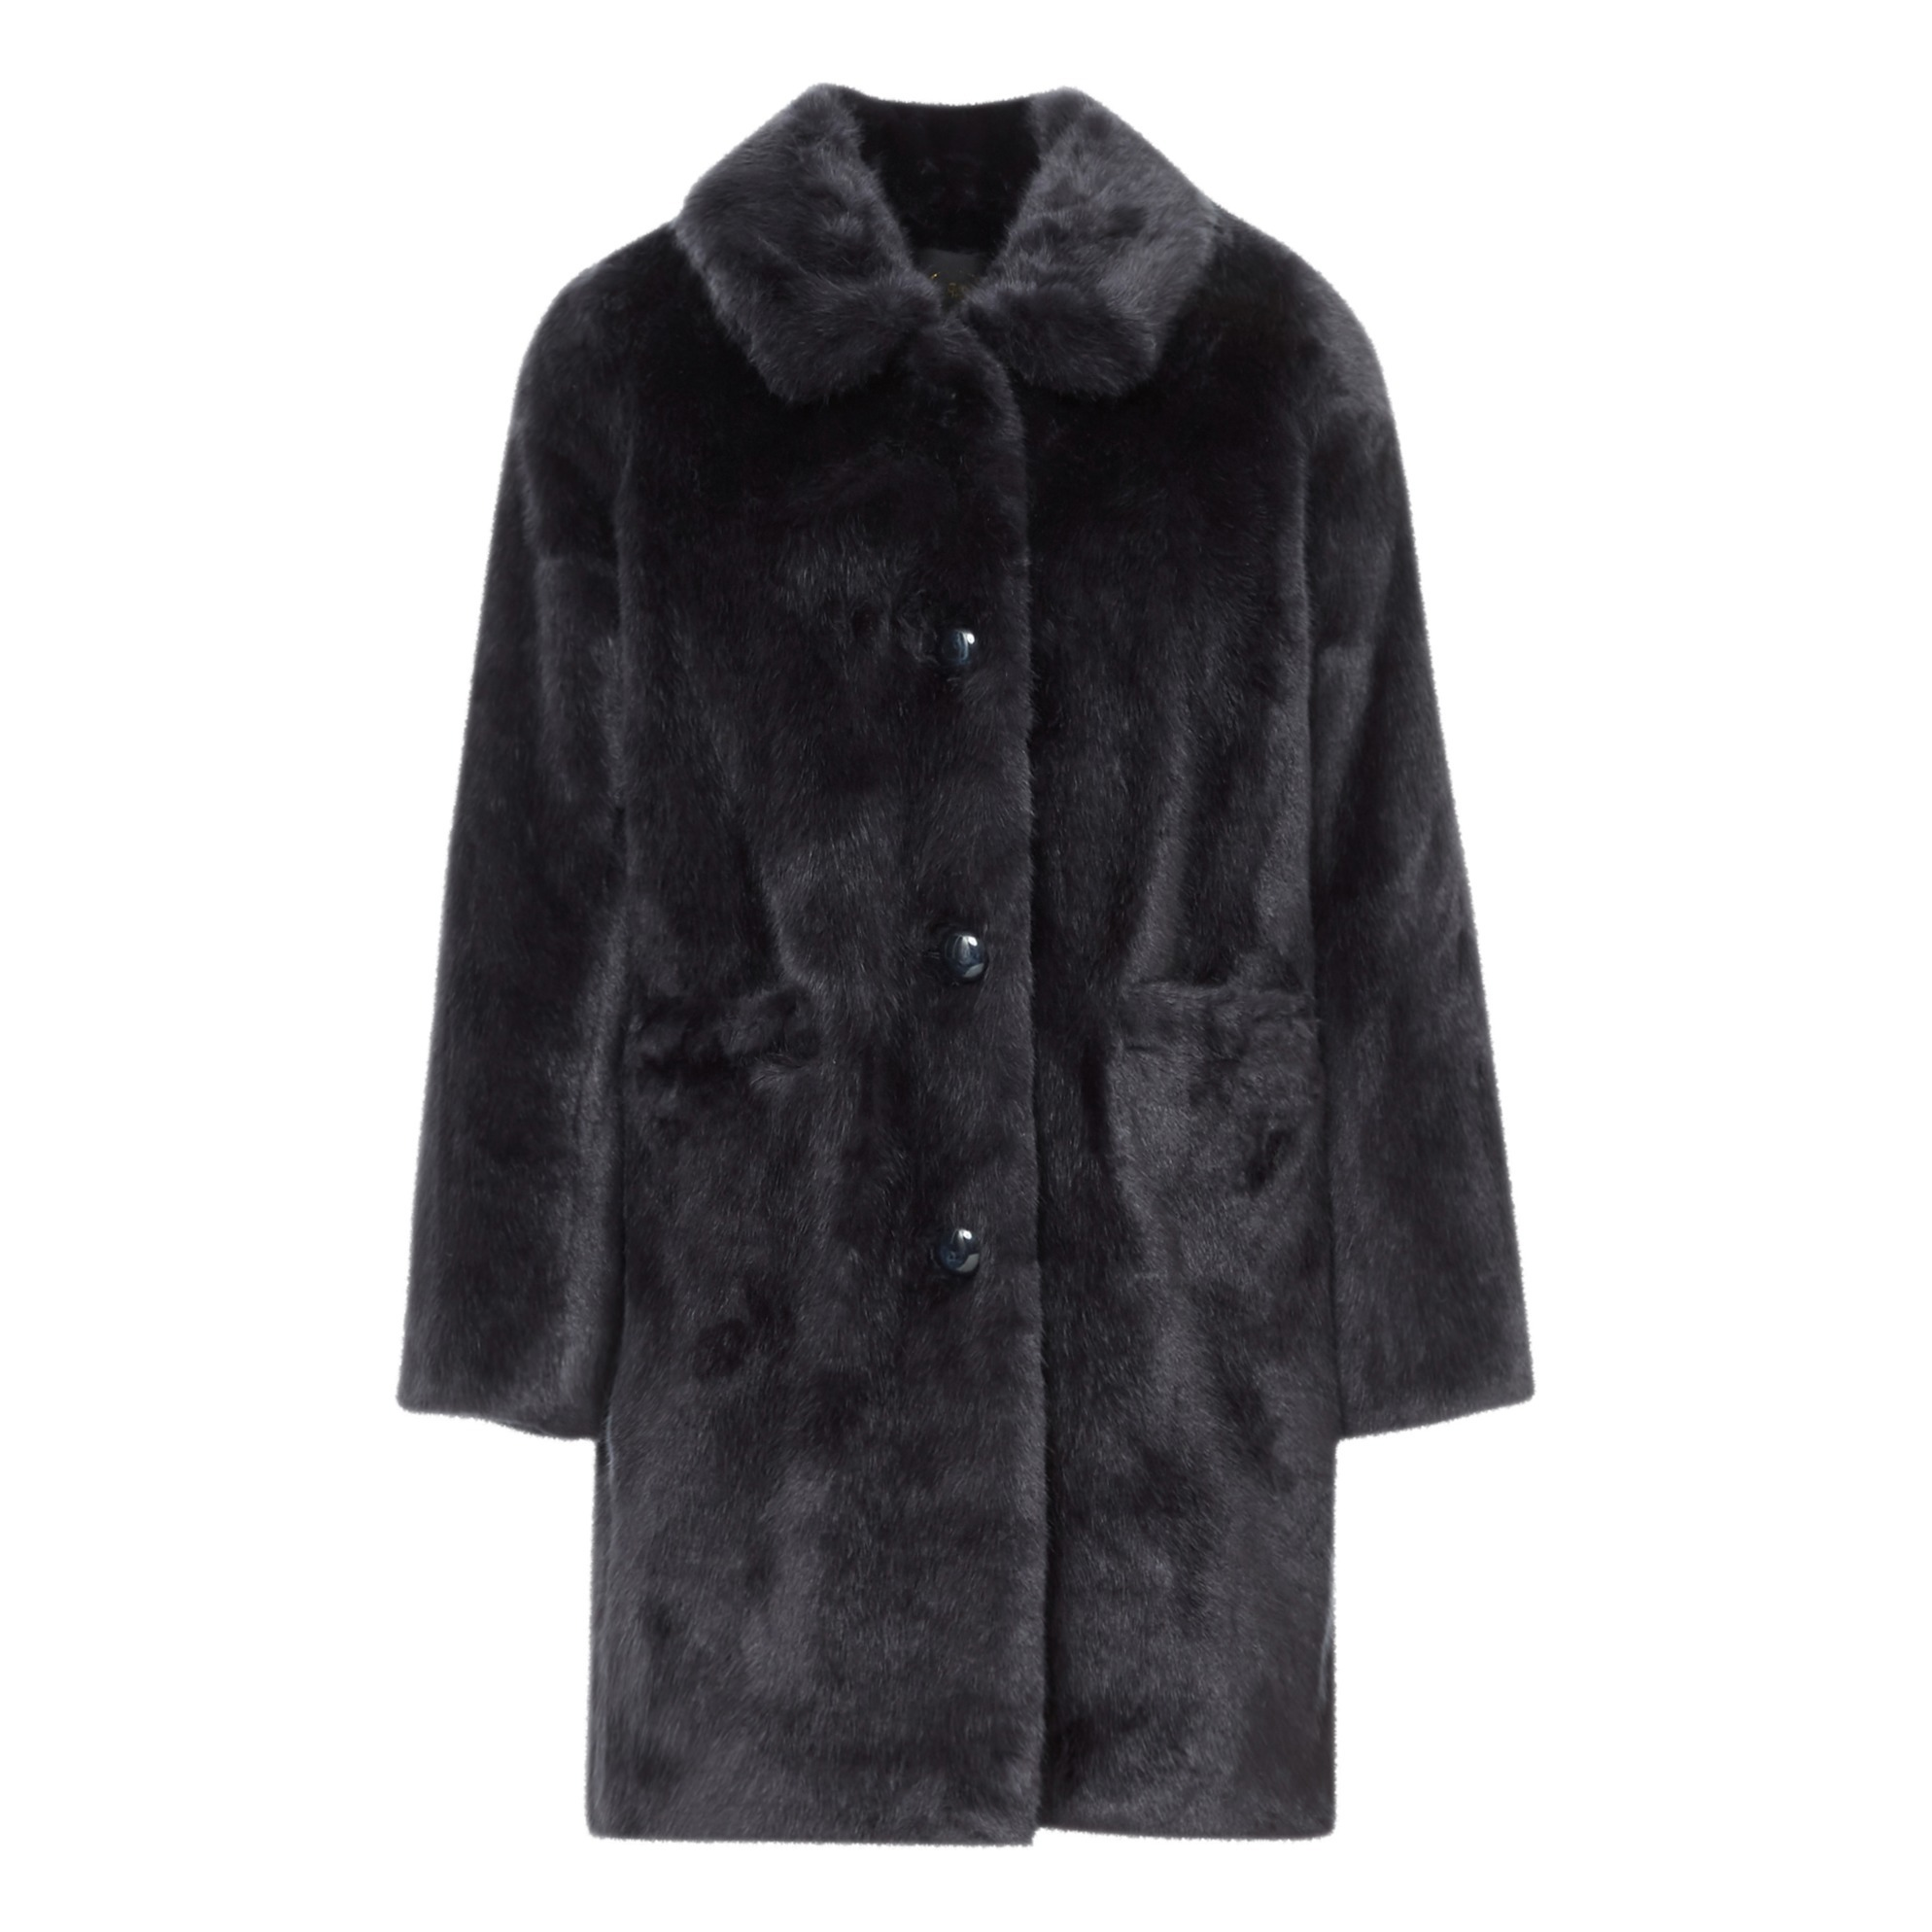 Navy Blue Faux Fur Coat with a Classic Collar